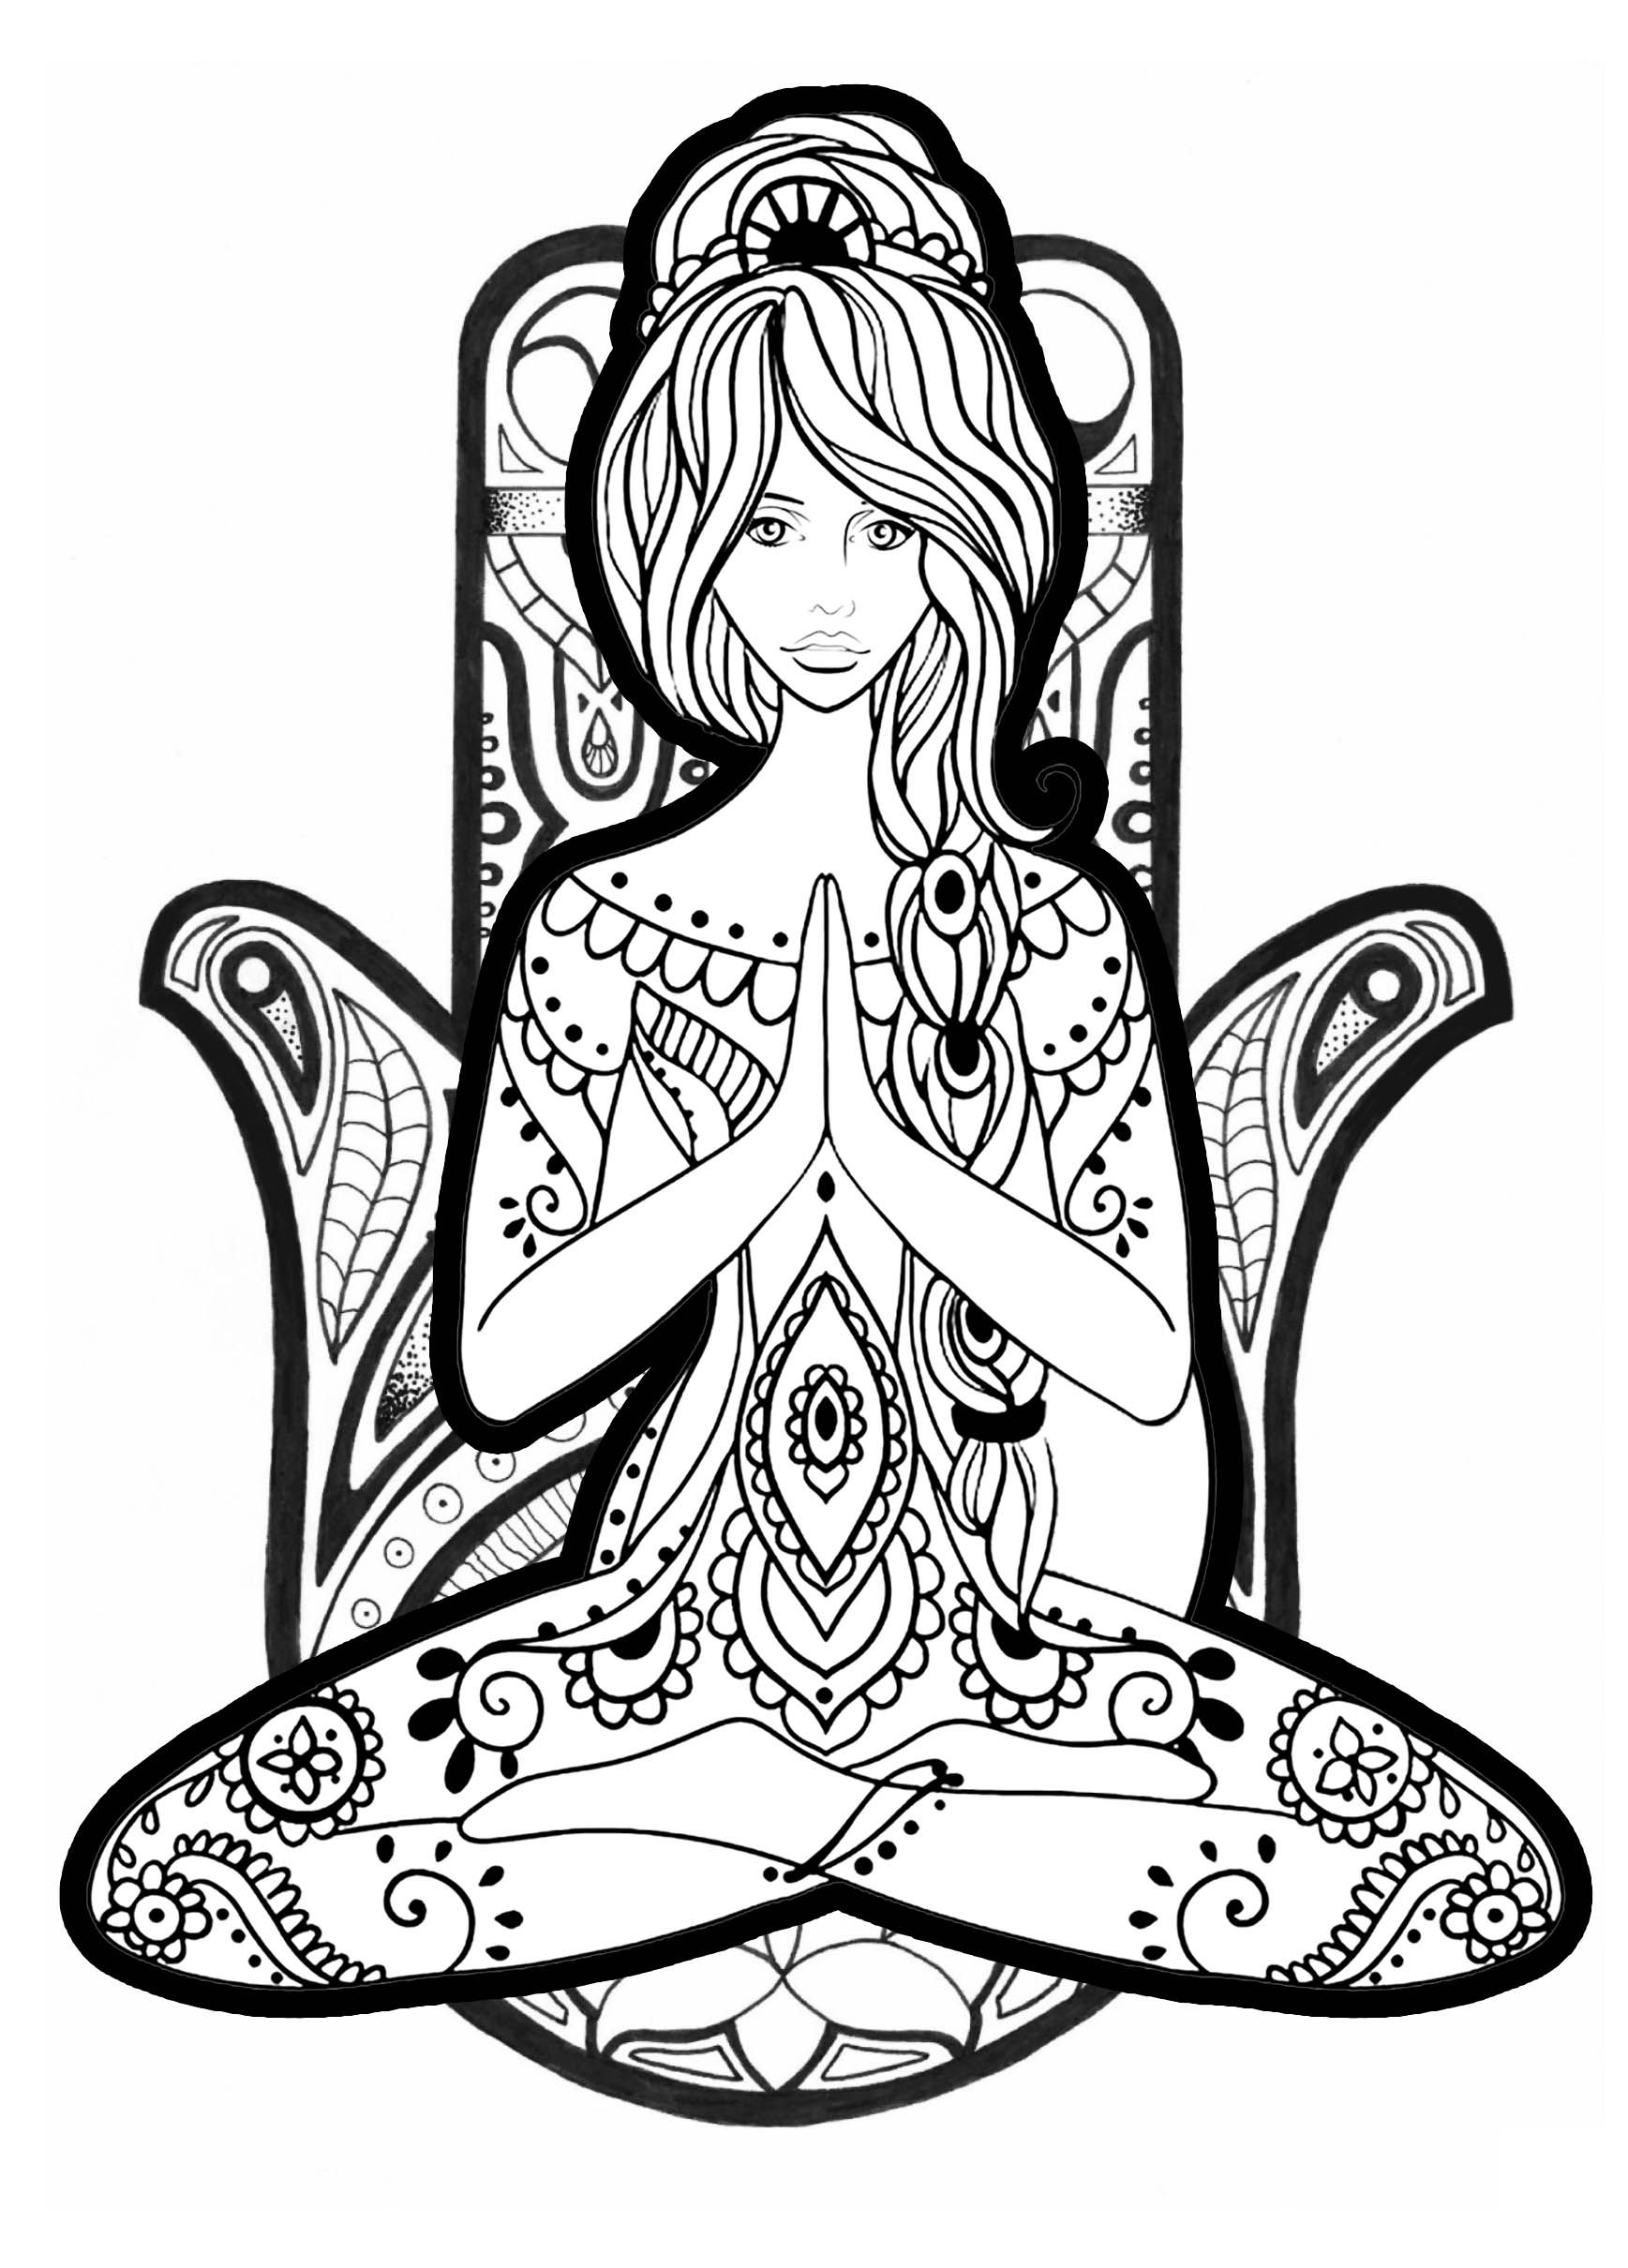 Yoga Coloring Page Difficult From The Gallery Zen Anti Stress Zen Colors Yoga Coloring Book Coloring Pages